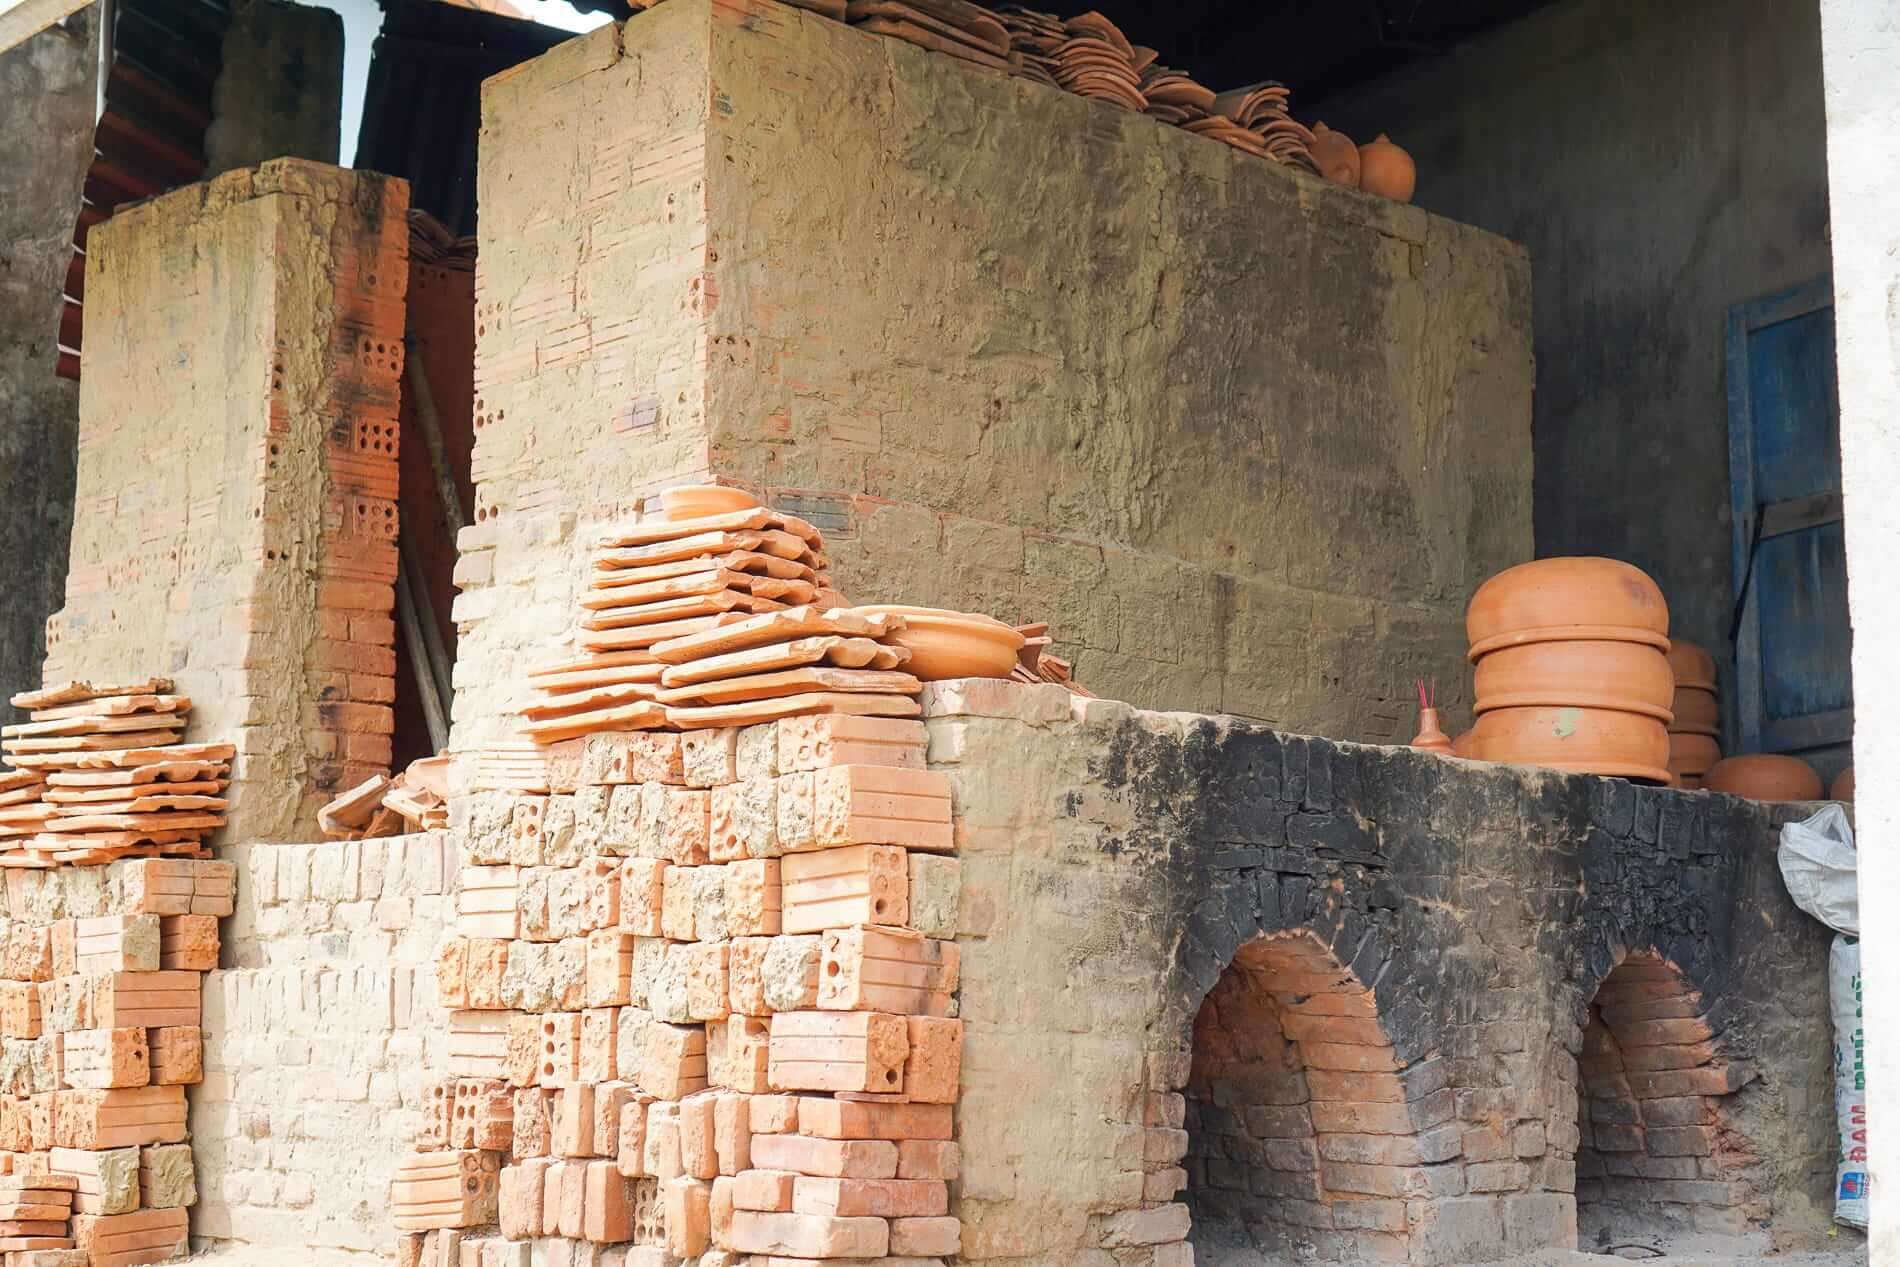 Wood fired kilns in Thanh Ha - Pottery Village